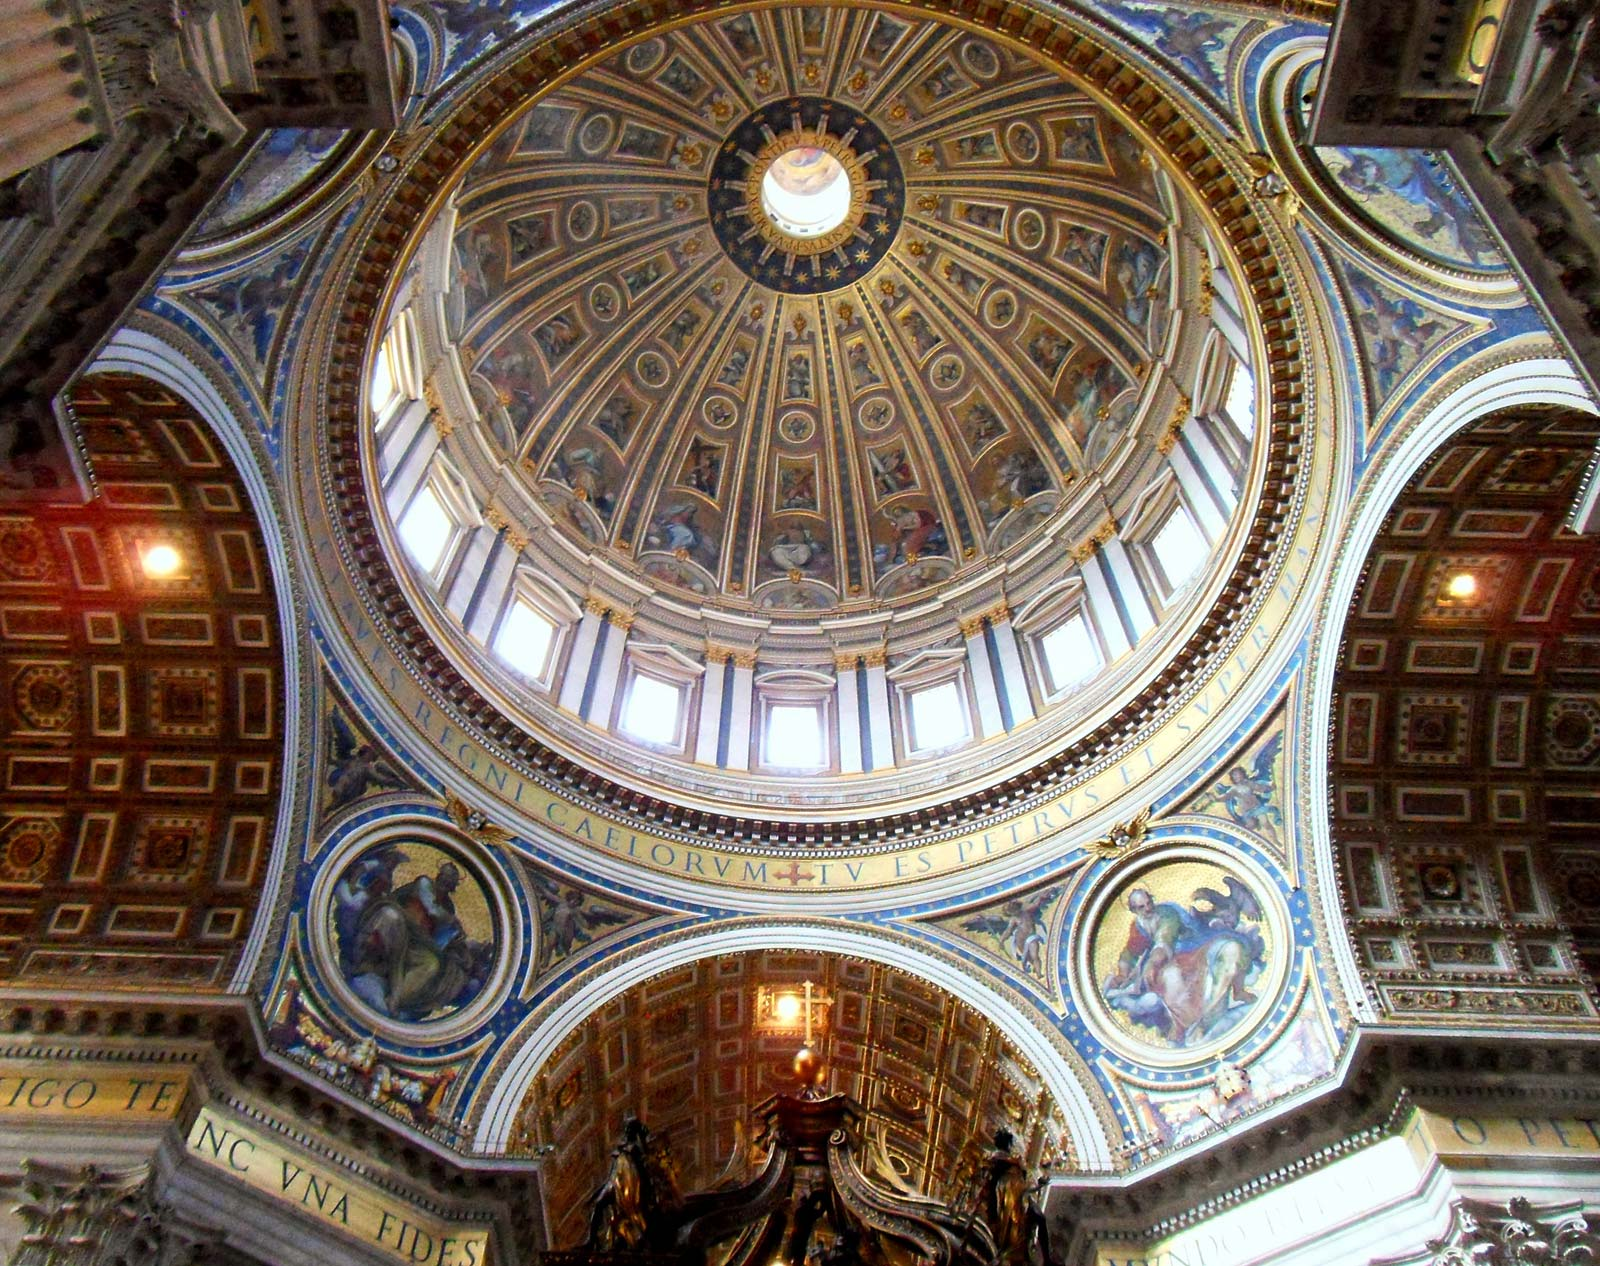 St. Peter's Basilica Dome